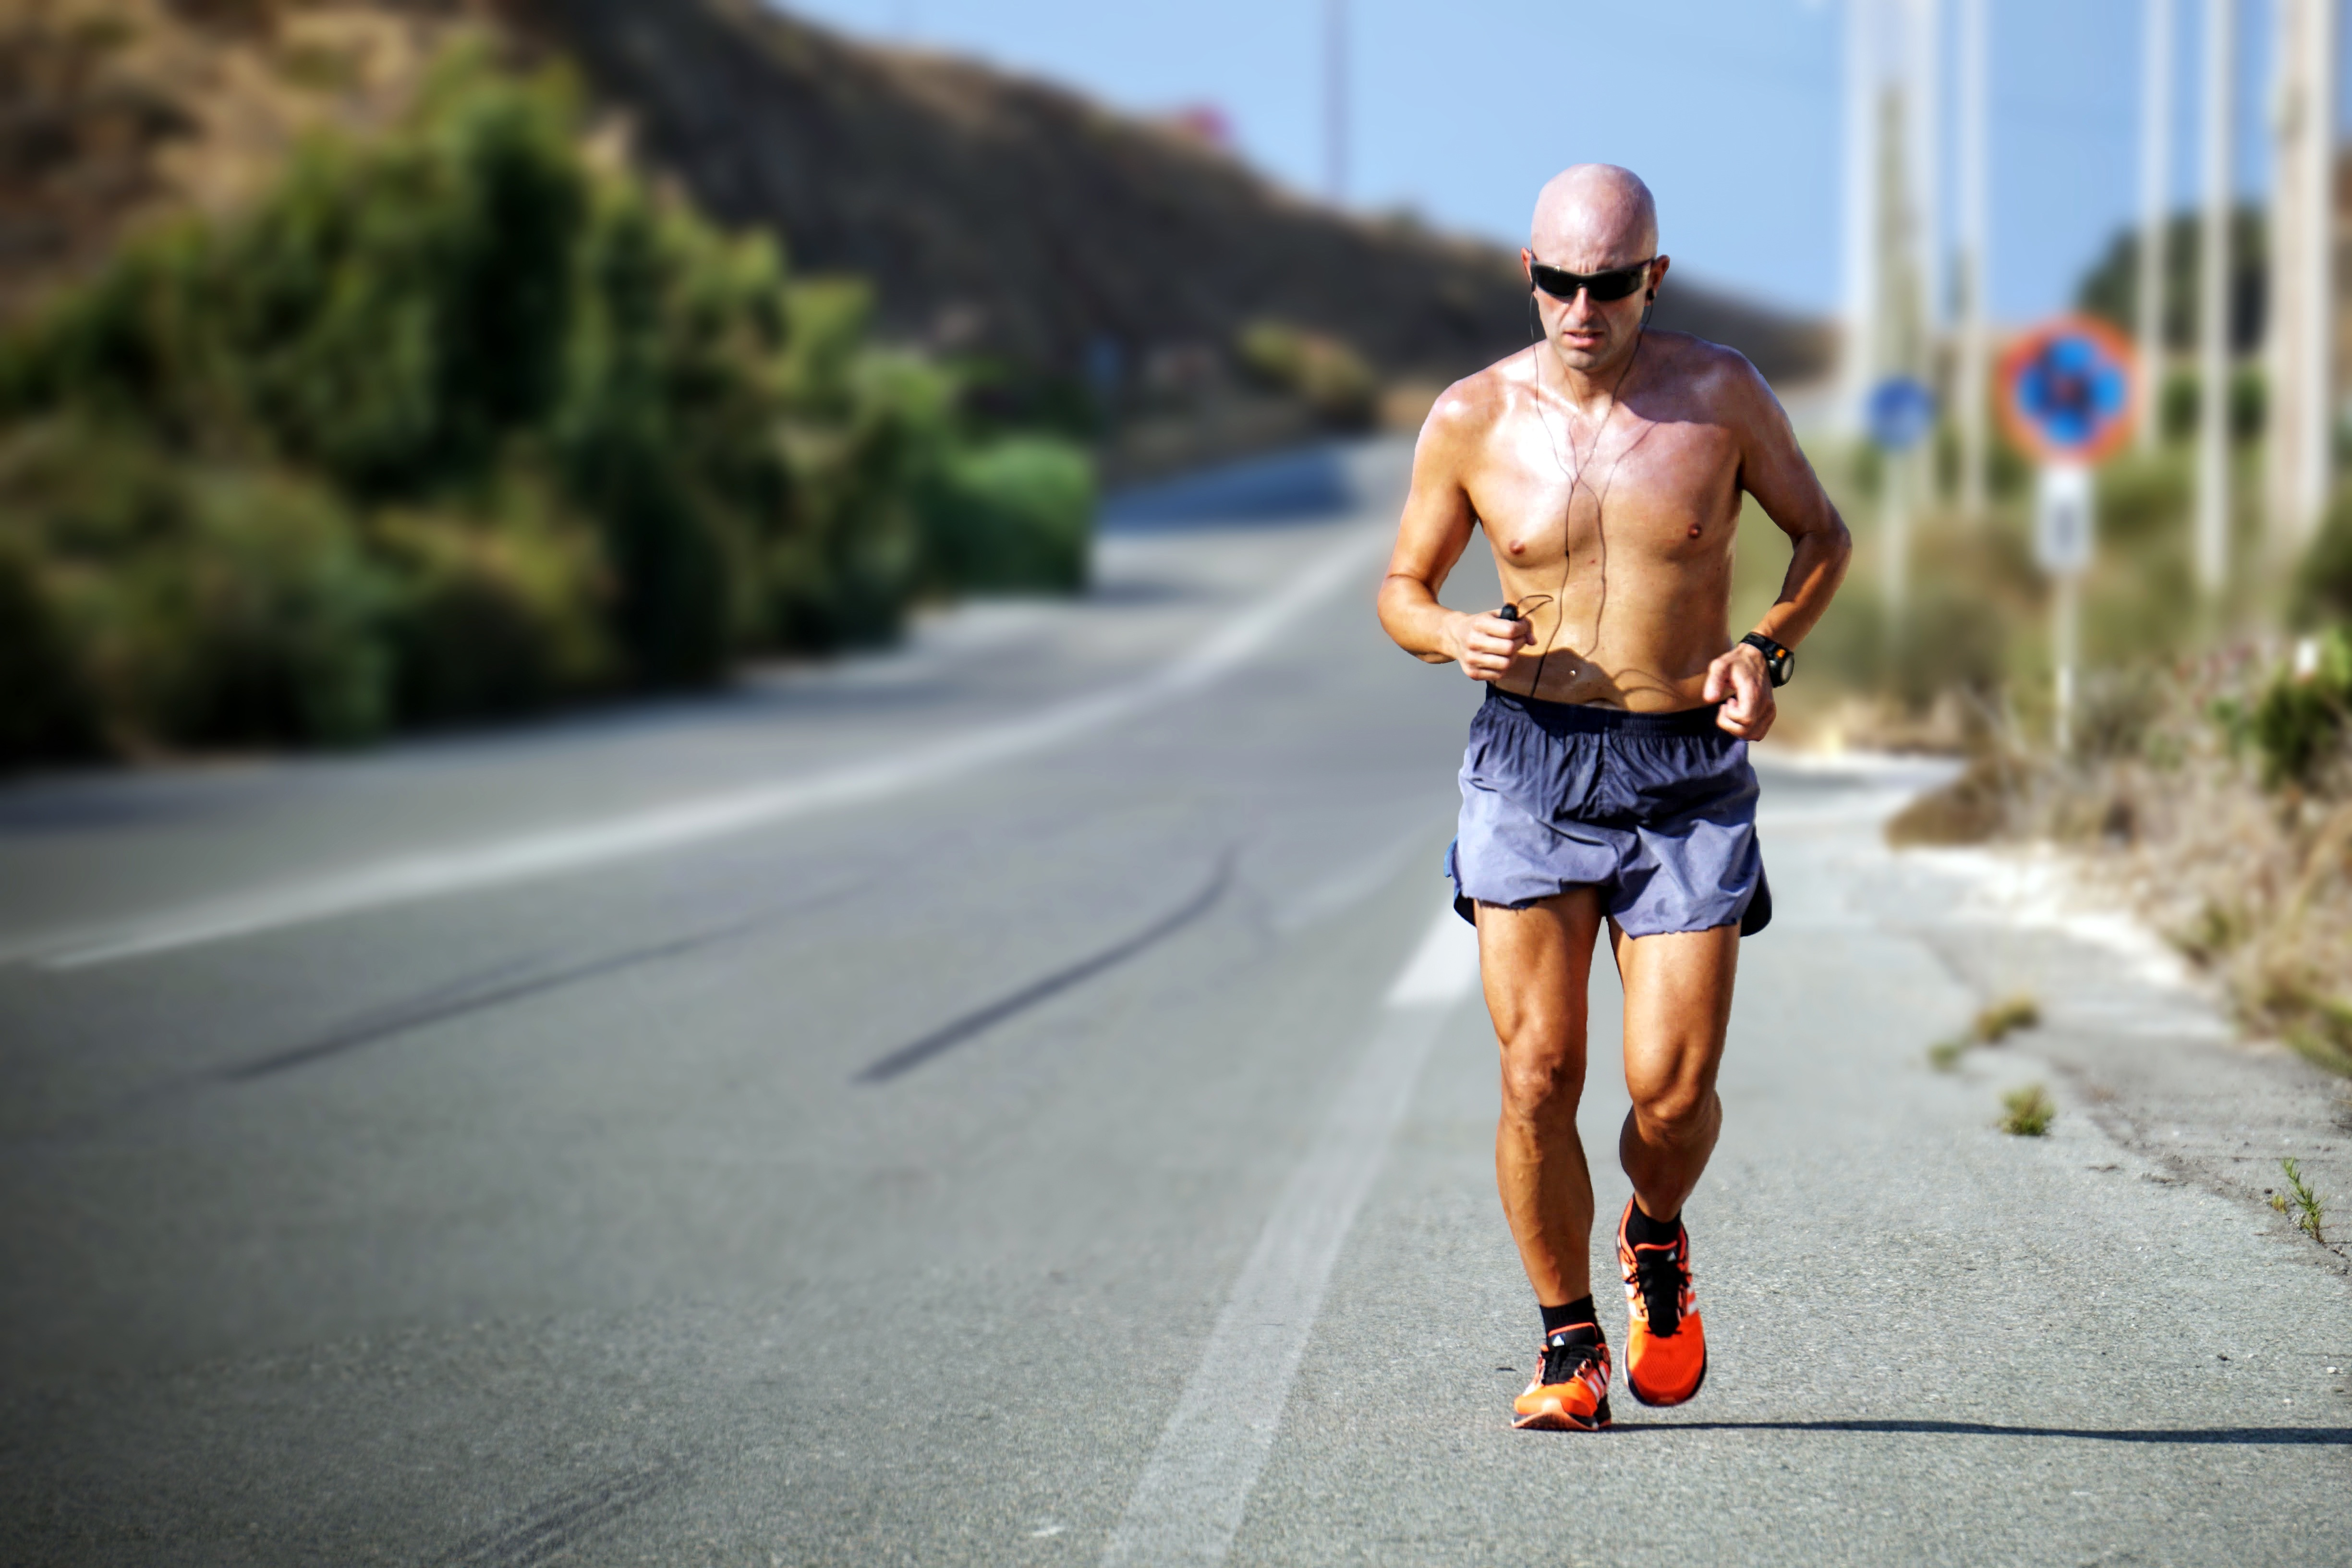 A man is jogging on the shoulder of a road, wearing sunglasses, shorts and tennis shoes.